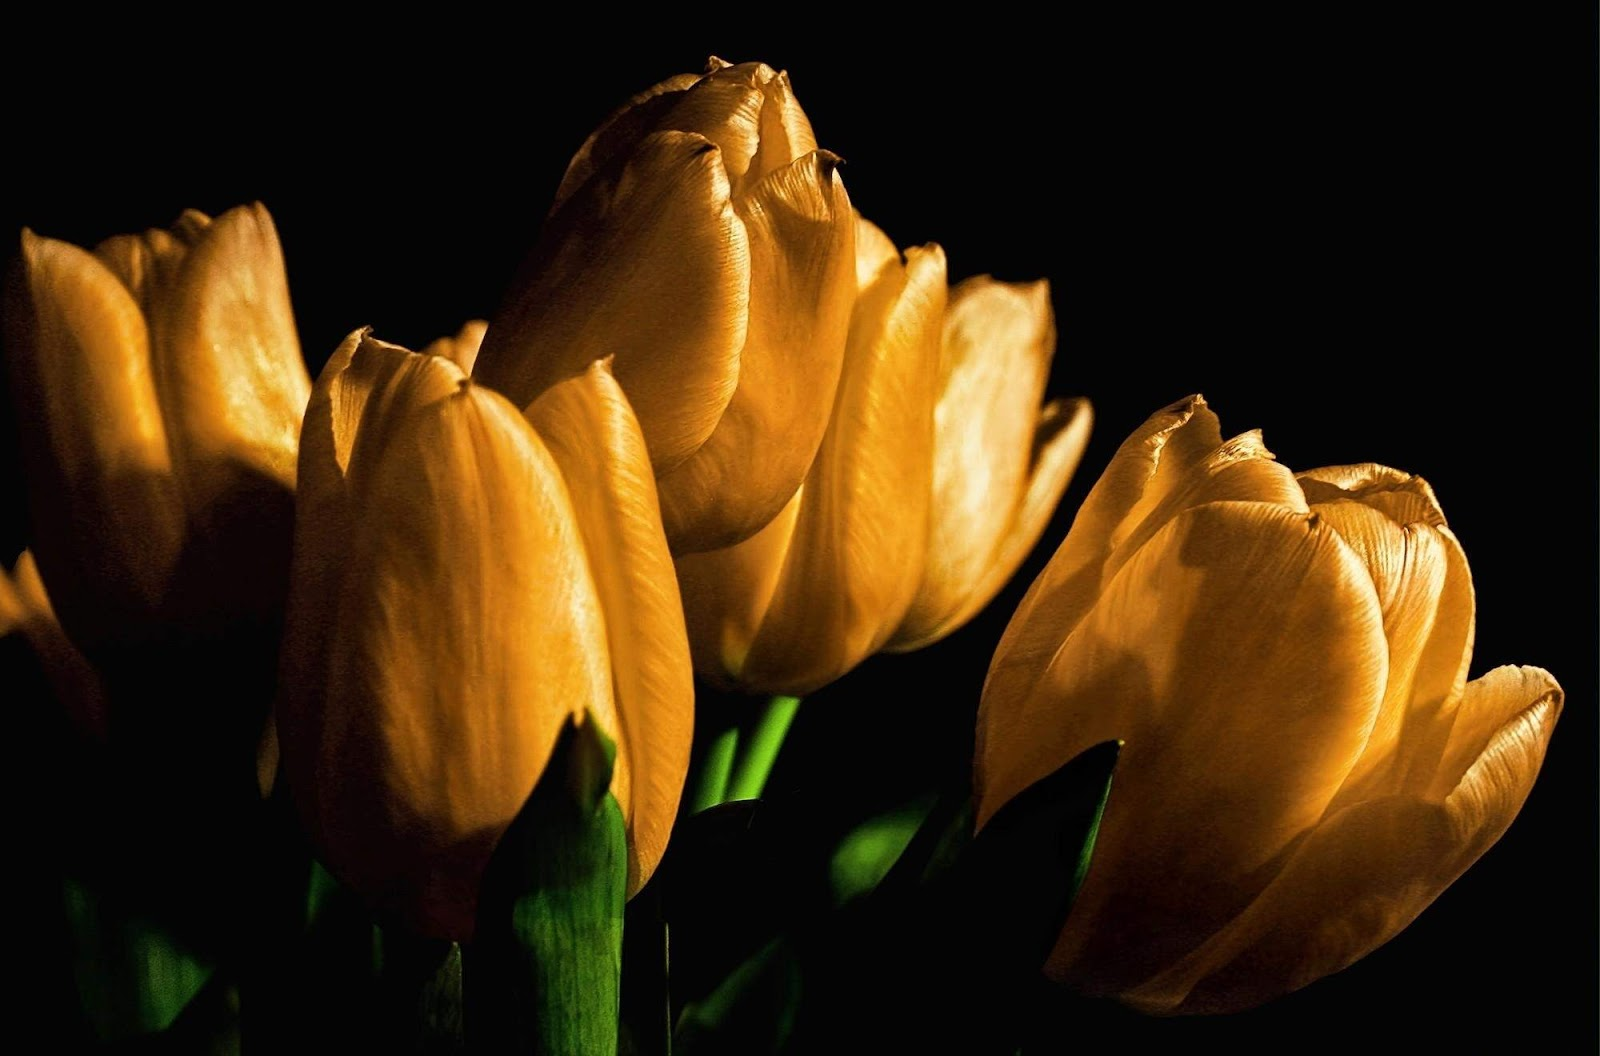 http://2.bp.blogspot.com/-WDYAHHSBifA/UT8ftkkzM_I/AAAAAAAADv4/cFqSHxG8kpI/s1600/tulips_yellow_flowers_buds_light_black_background-yellow-black+wallpaper-hd.jpg